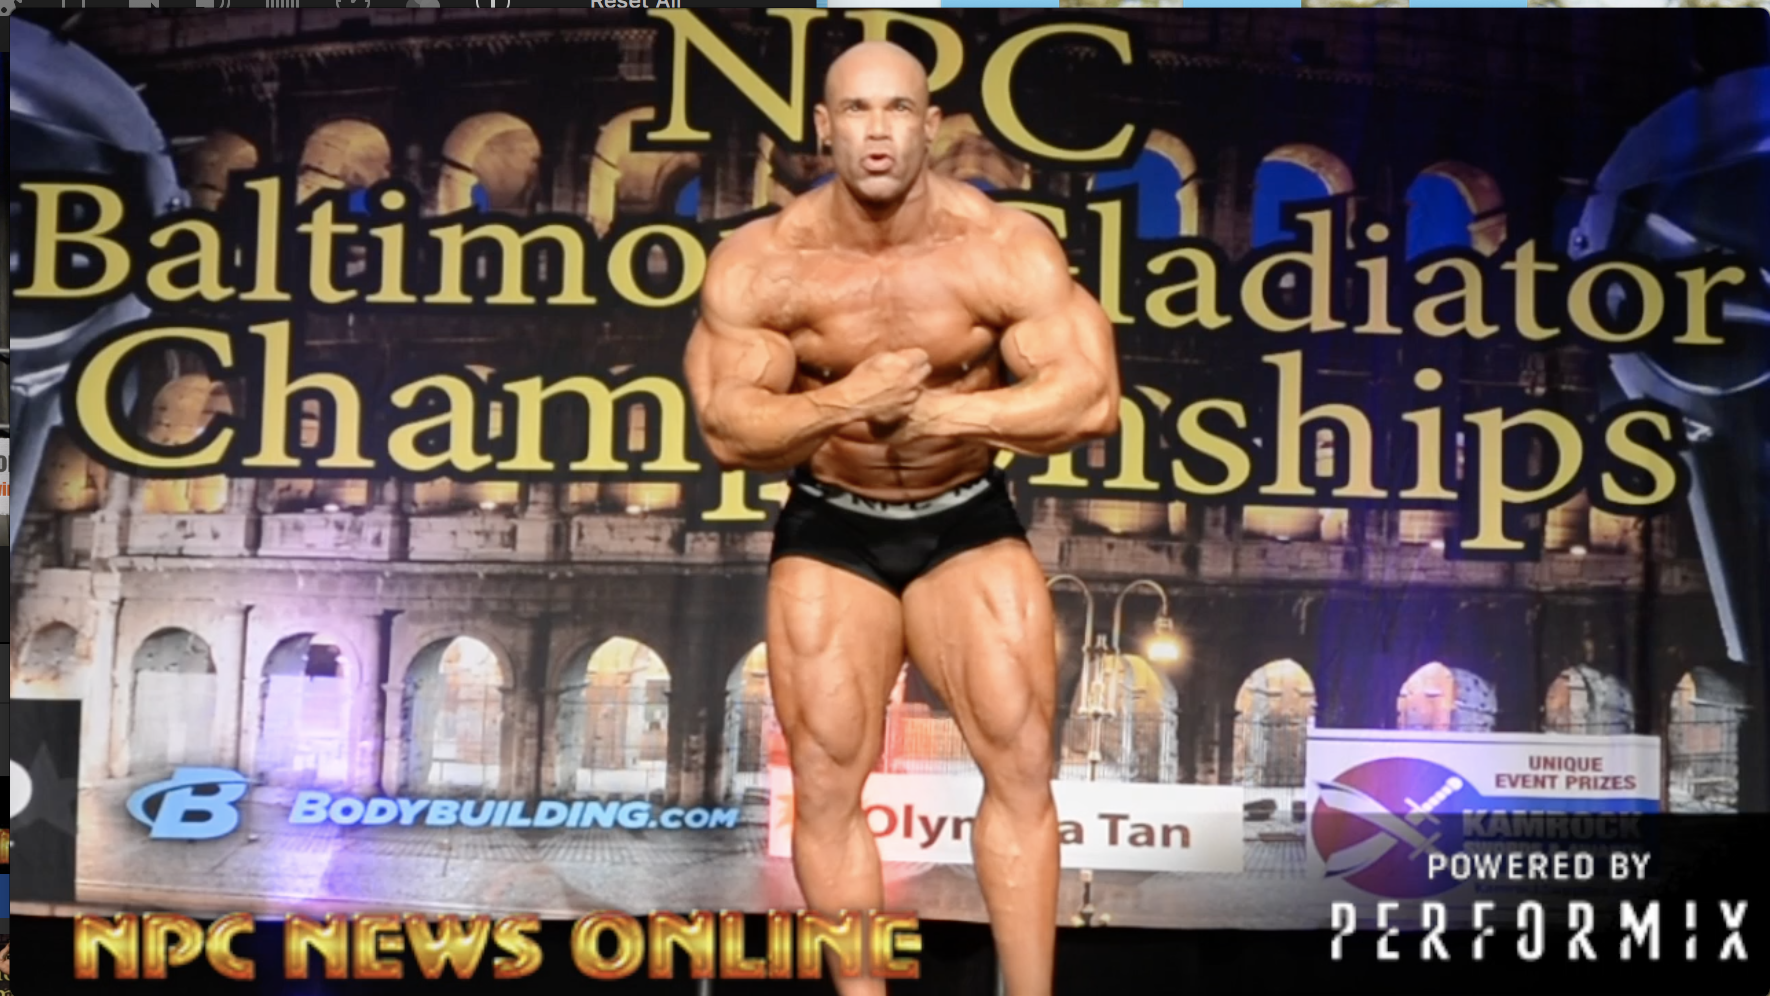 2018 NPC Baltimore Gladiator Championships Guest Poser: IFBB Bodybuilding Legend Kevin Levrone